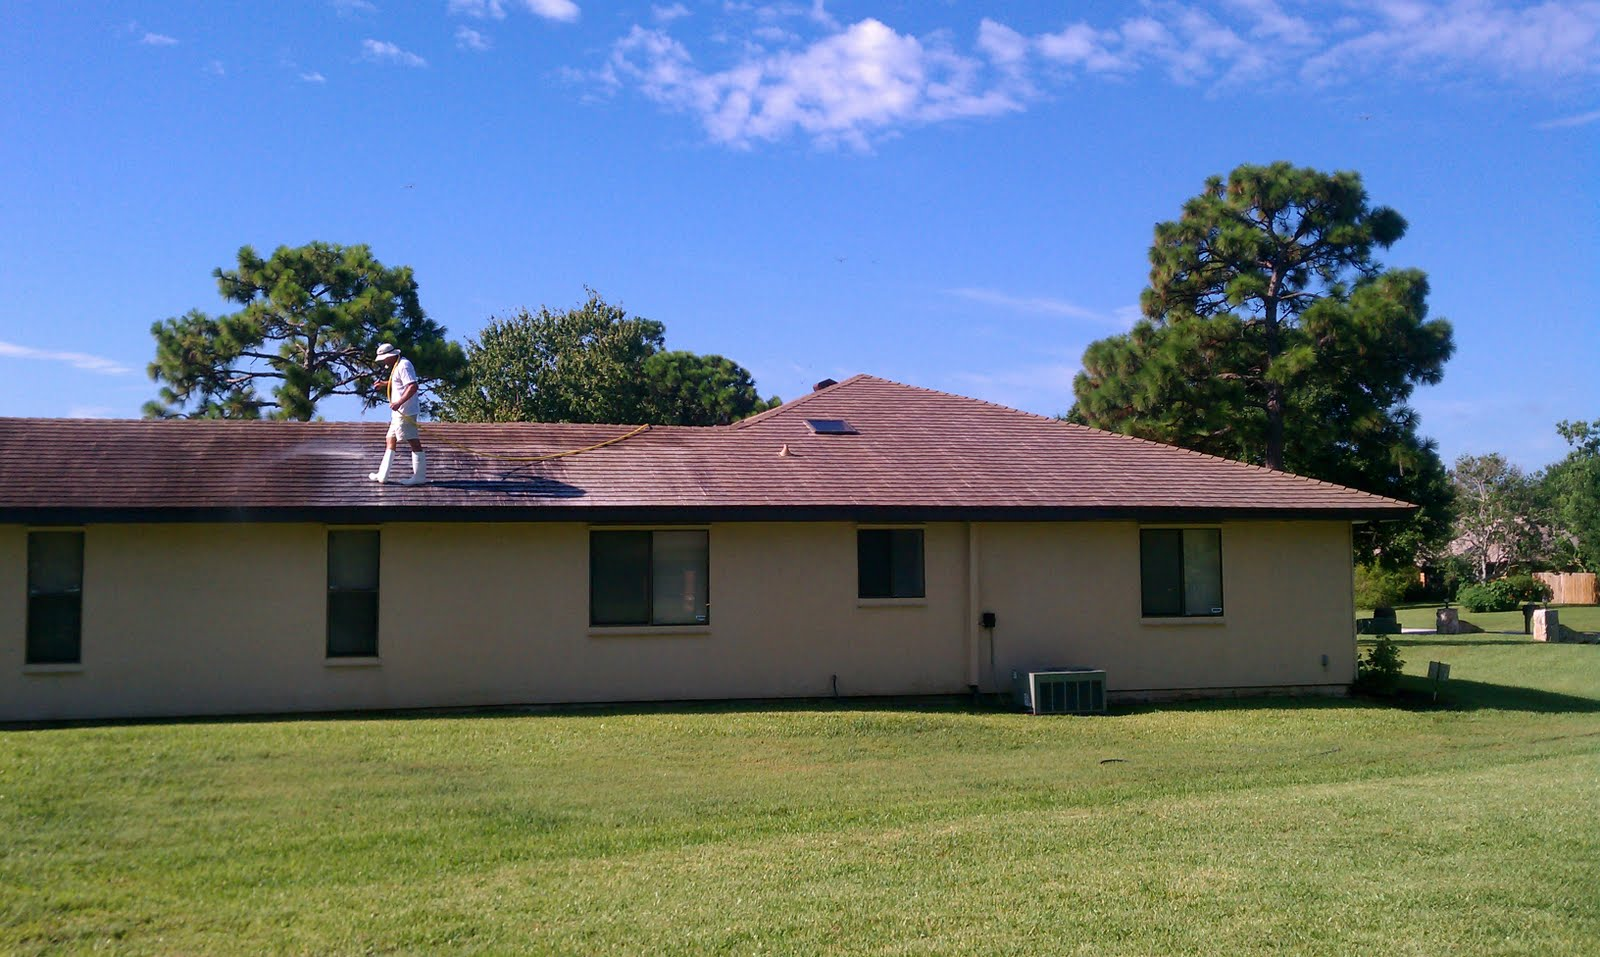 Beacon Roof Amp Exterior Cleaning Shingle Roof Cleaning